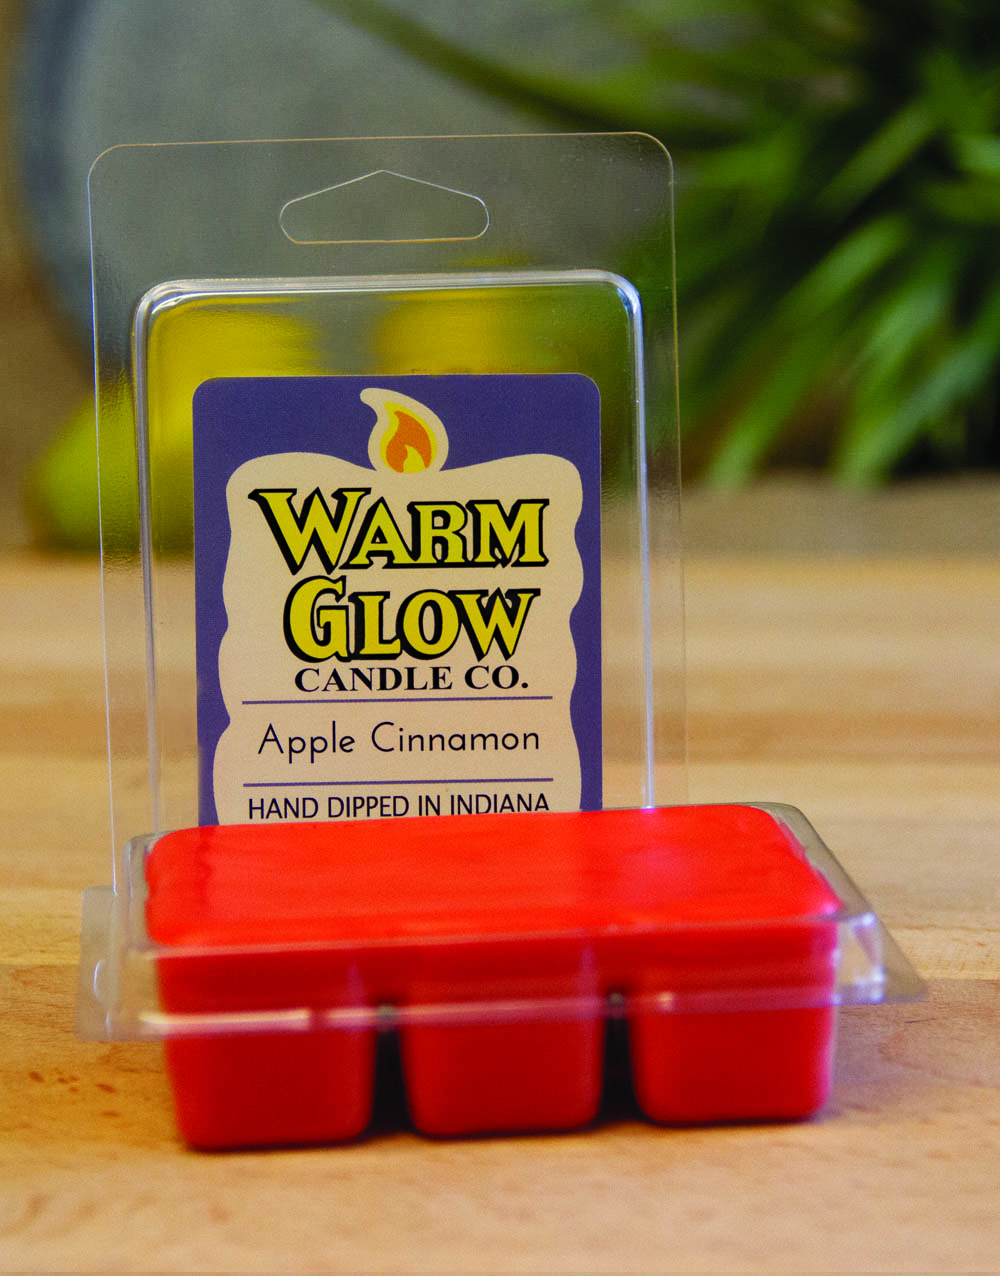 Apple Cinnamon Scented Melt